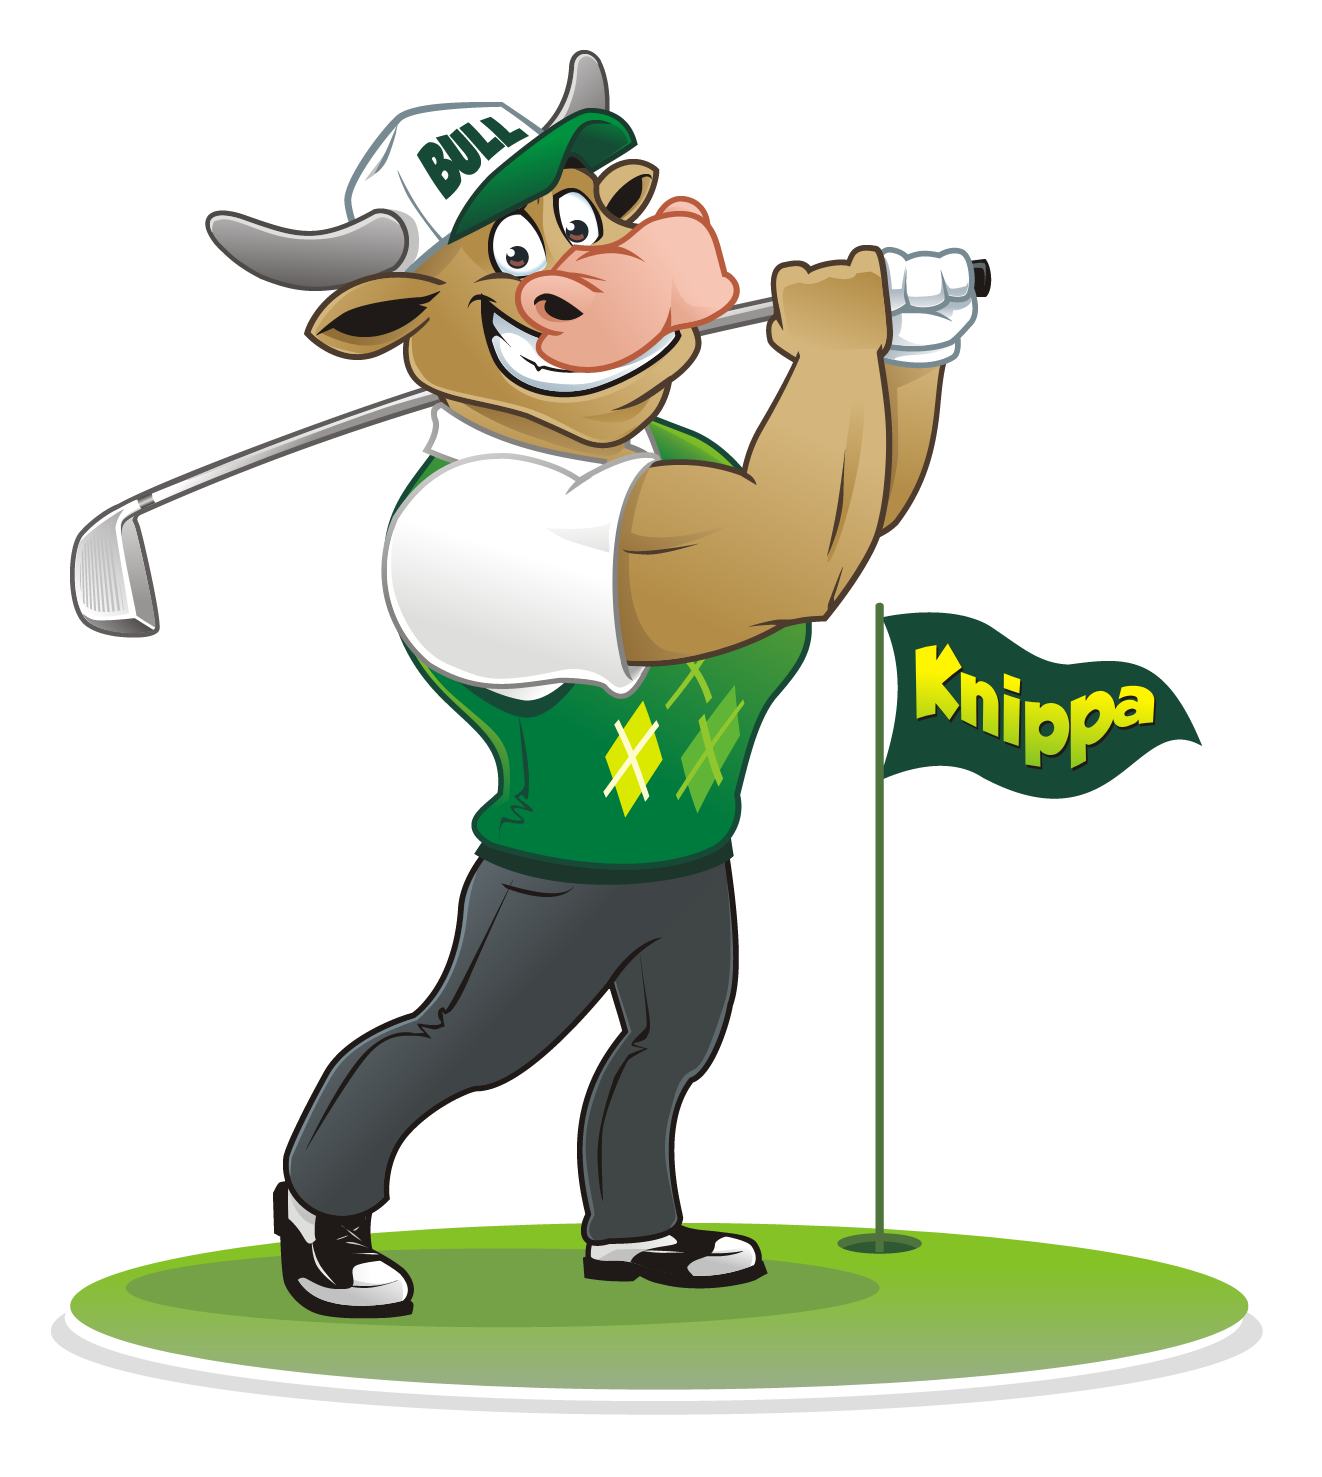 """Design a logo featuring a Bull (animal) and incorporating the name """"Knippa"""" for a monthly golf game"""